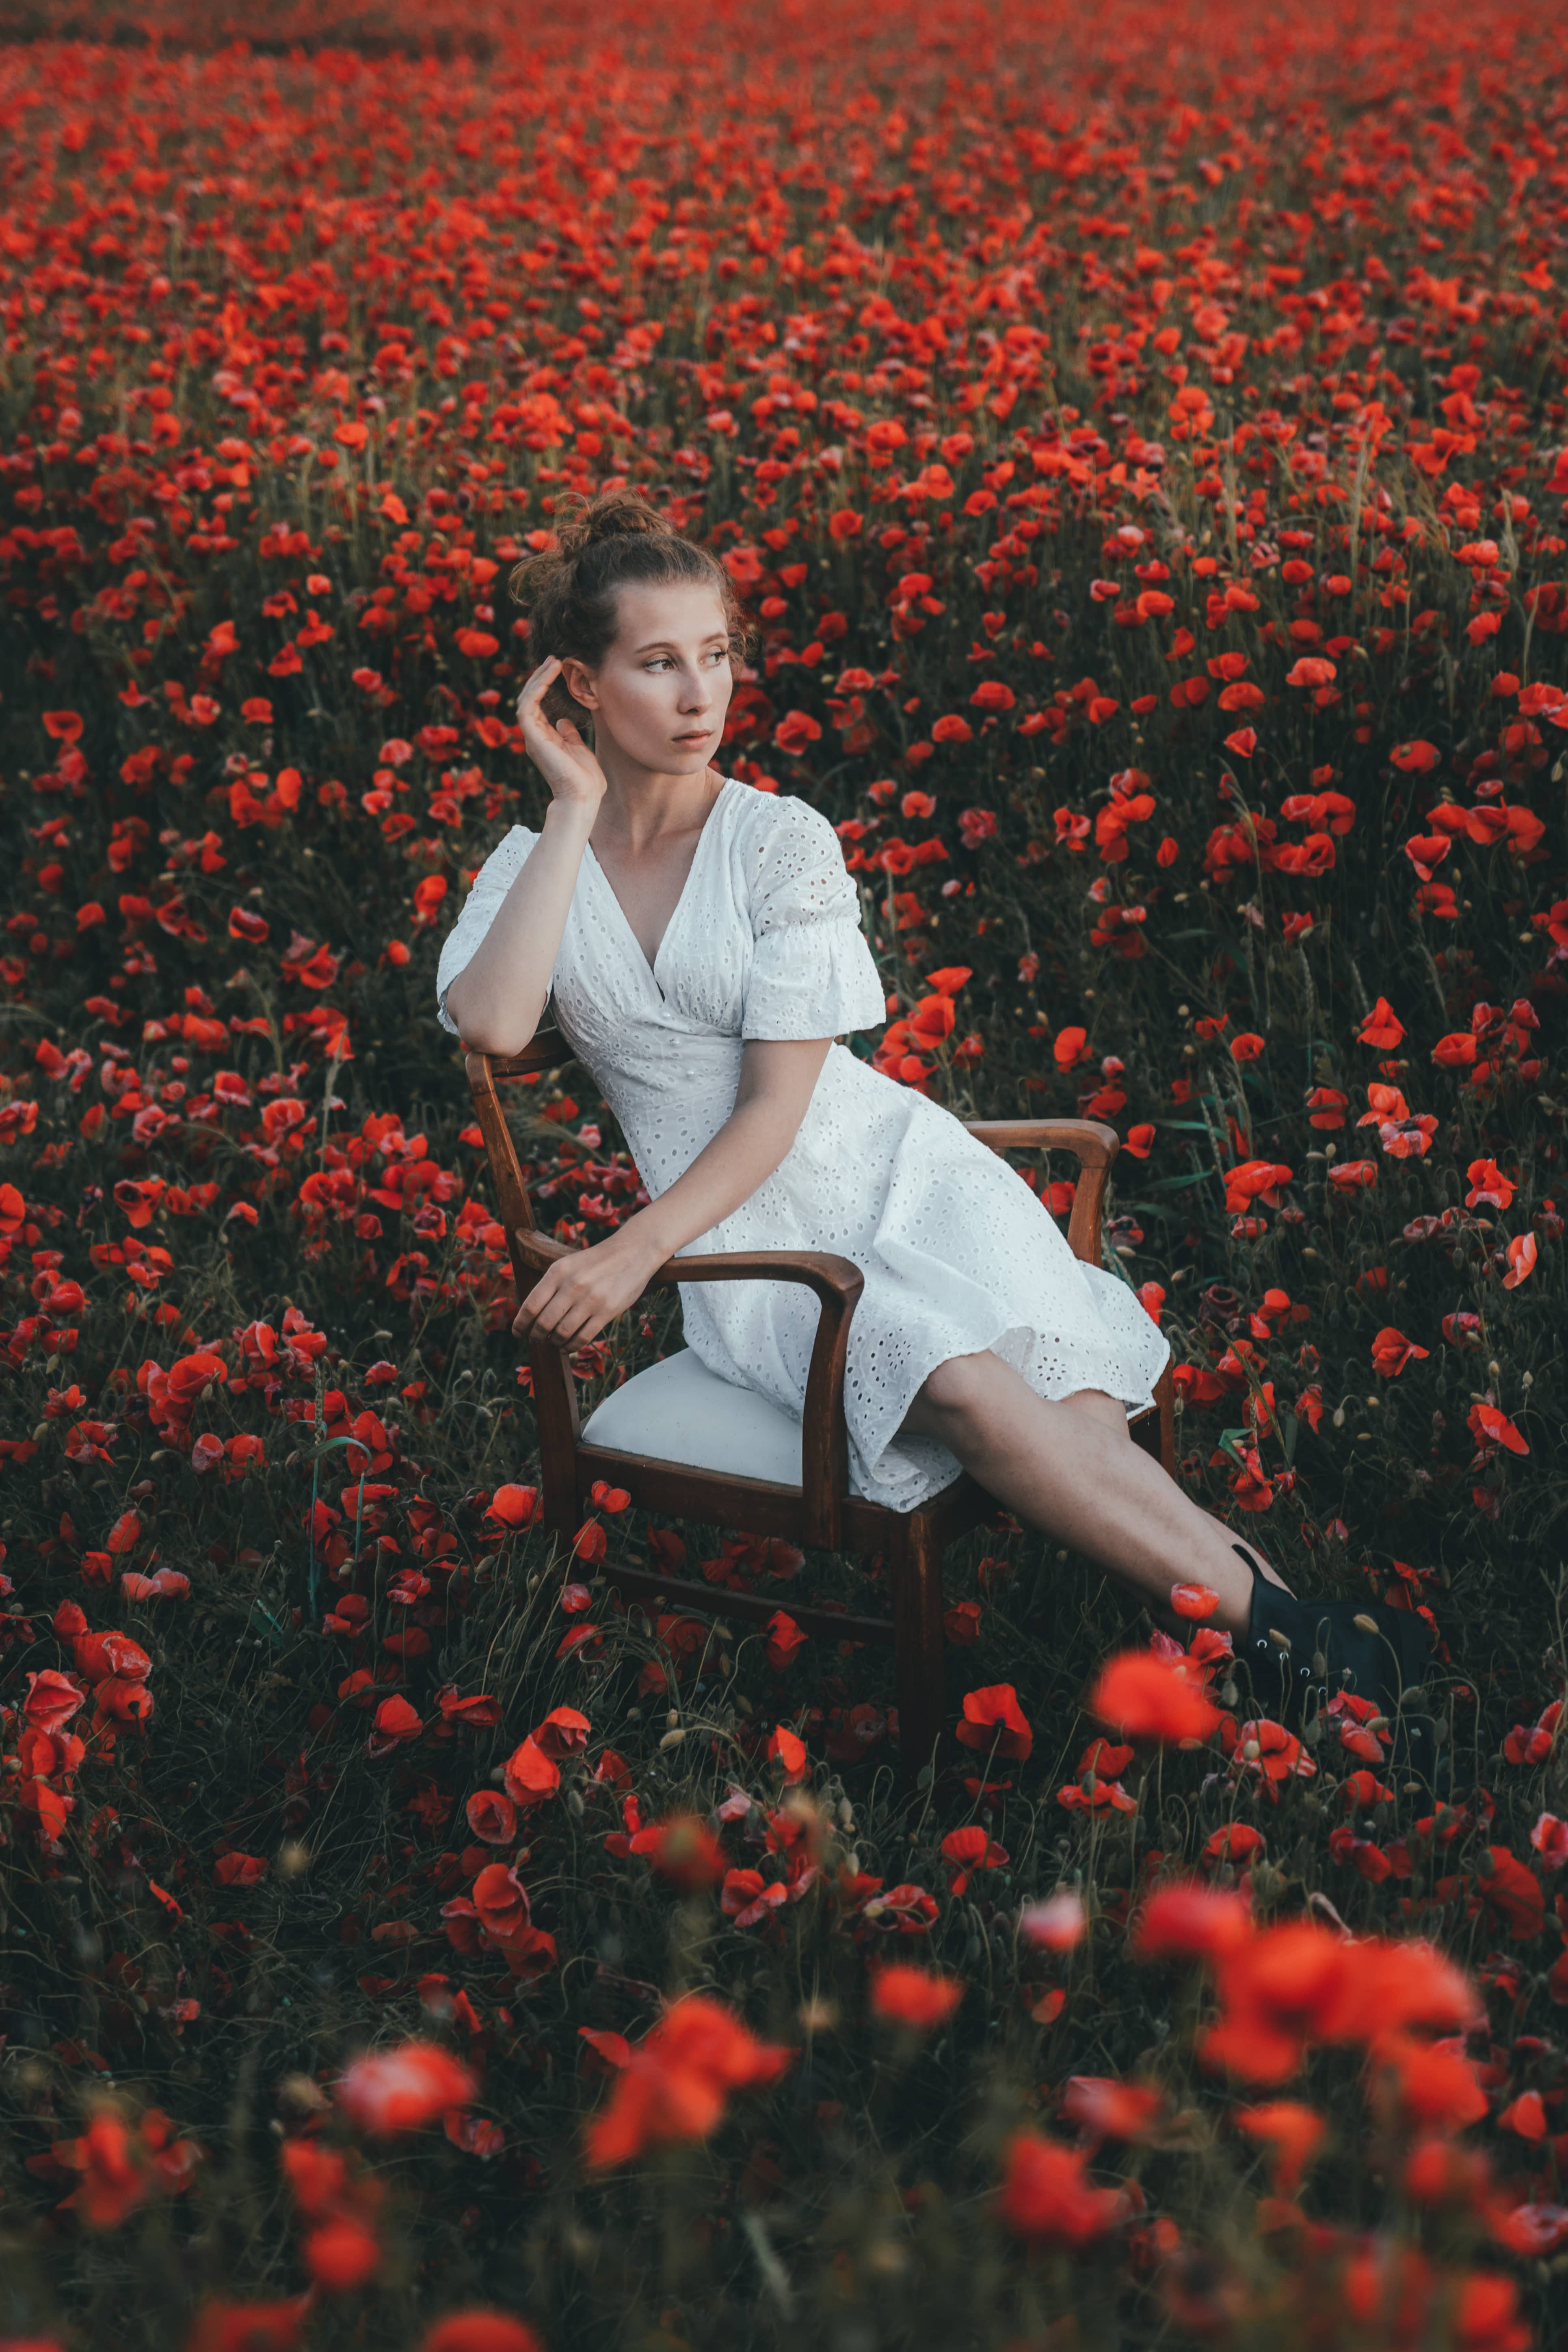 A girl in a dress sitting on a chair, being surrounded by poppy flowers